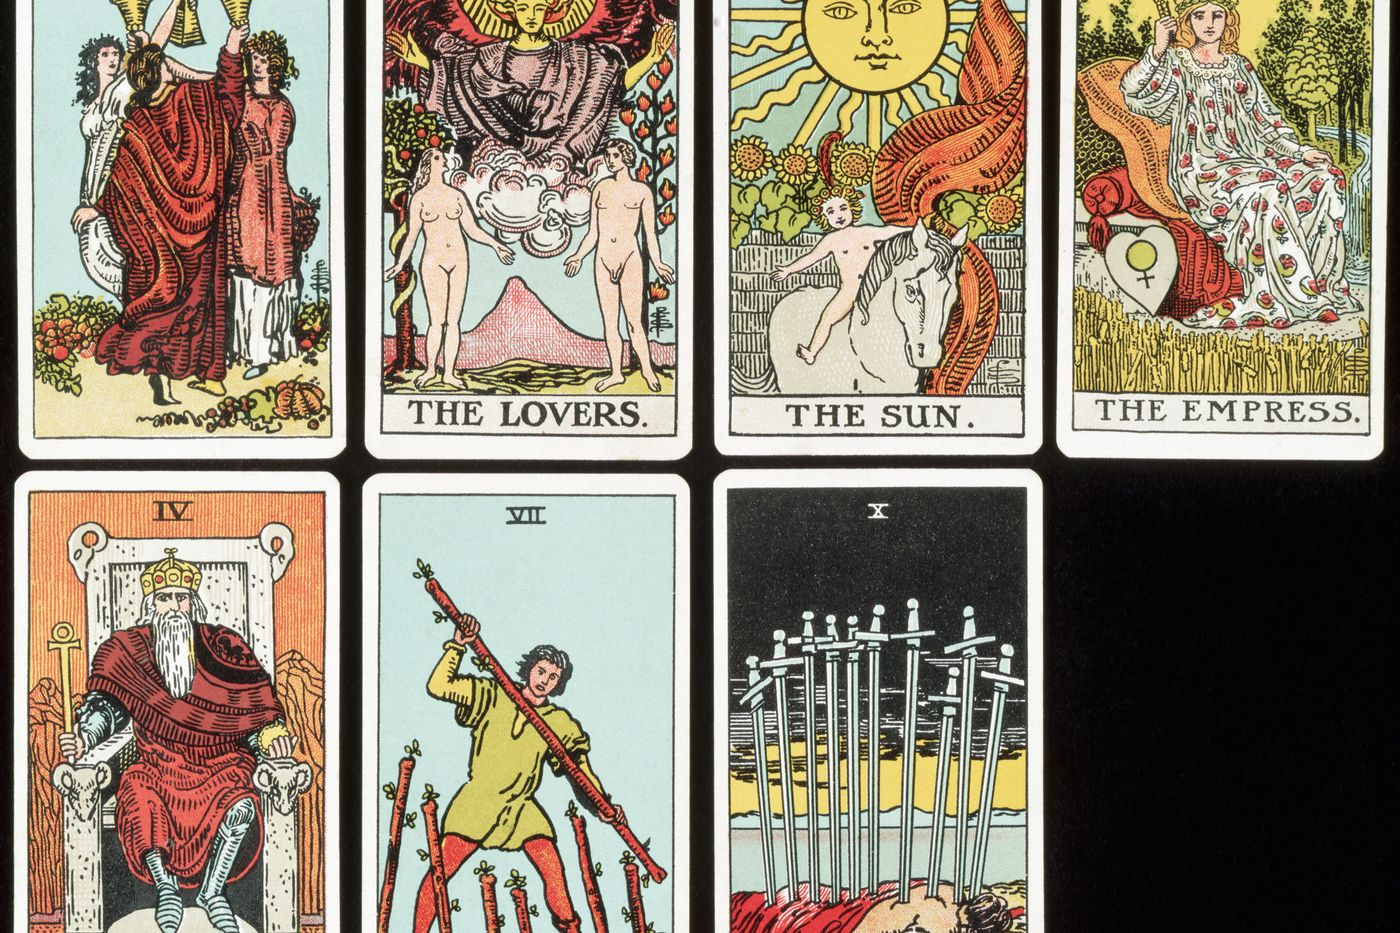 How to Read Tarot Cards A Beginner's Guide to Meanings